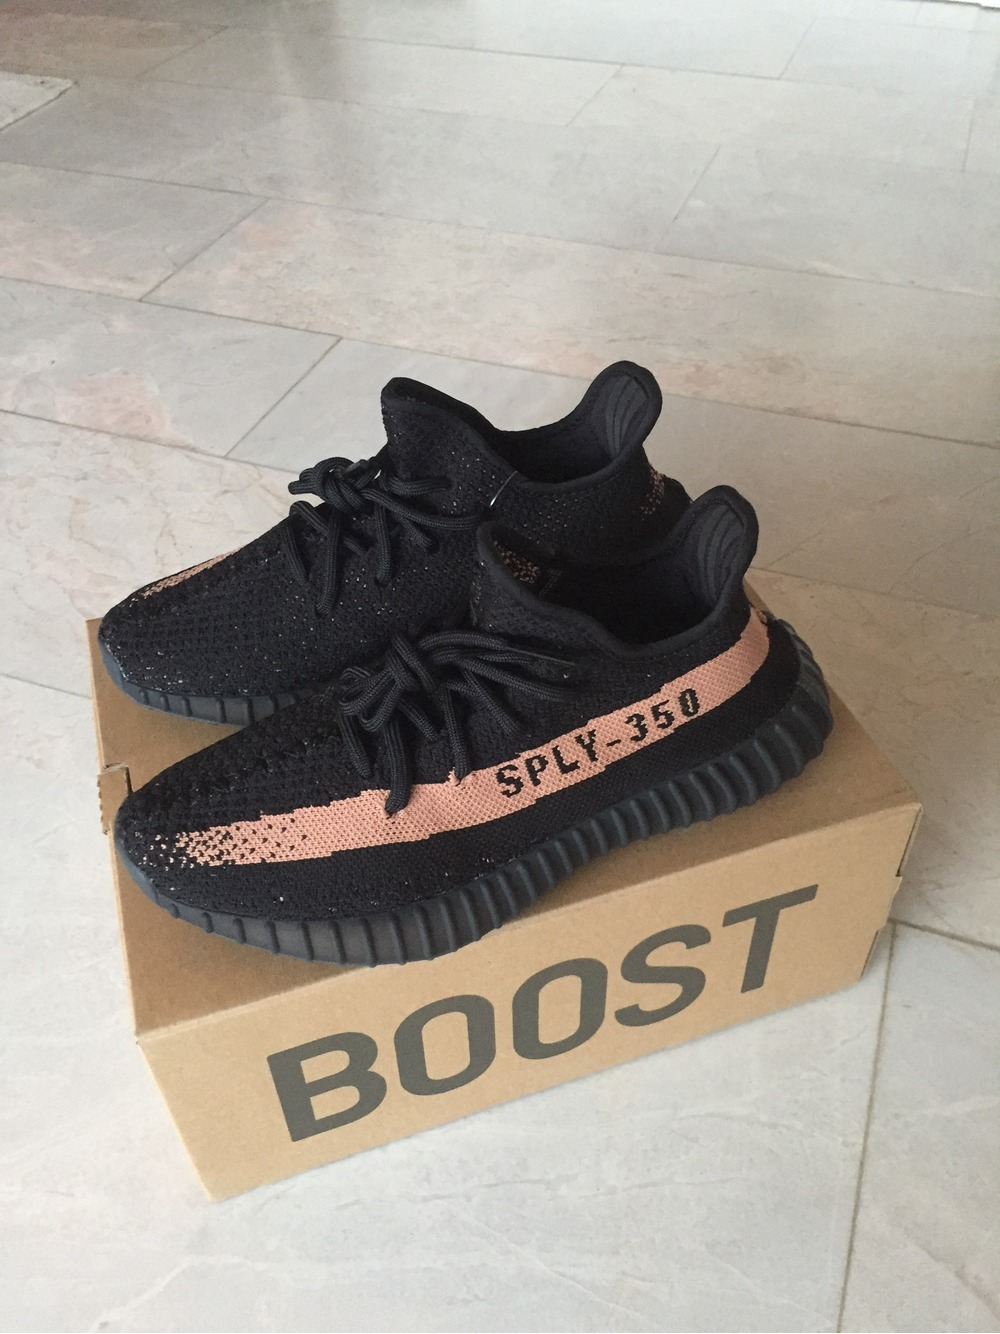 Adidas Yeezy 350 Boost v2 Black Red 10 10 BY 9612 Cheap Sale